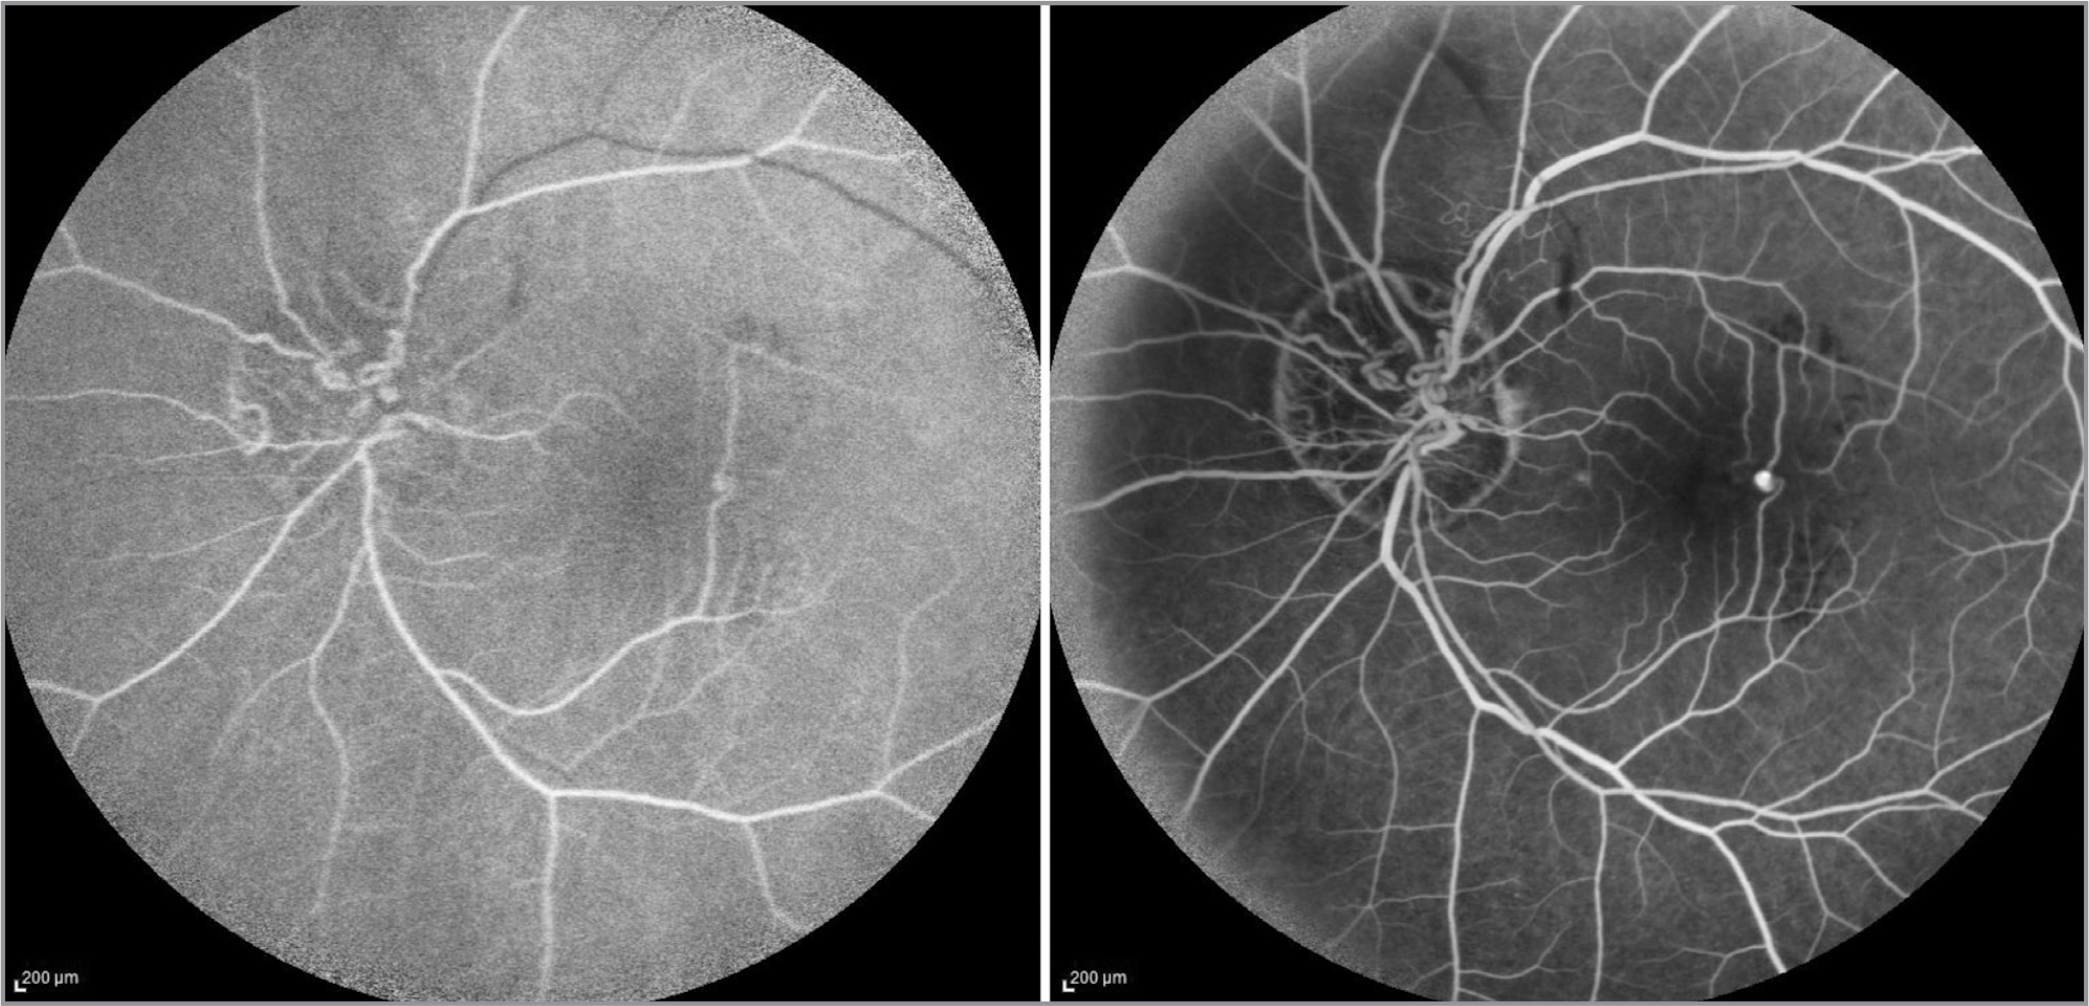 (Left) Early frames of fluorescein angiography showing filling of the perifoveal exudative vascular anomalous complex (PEVAC)-like lesion in early arteriovenous phase. Superotemporal vein filling slowly due to a possible venous obstruction due to arterial loops. (Right) A well-defined hyperfluorescent structure corresponding to PEVAC-like ectasia.